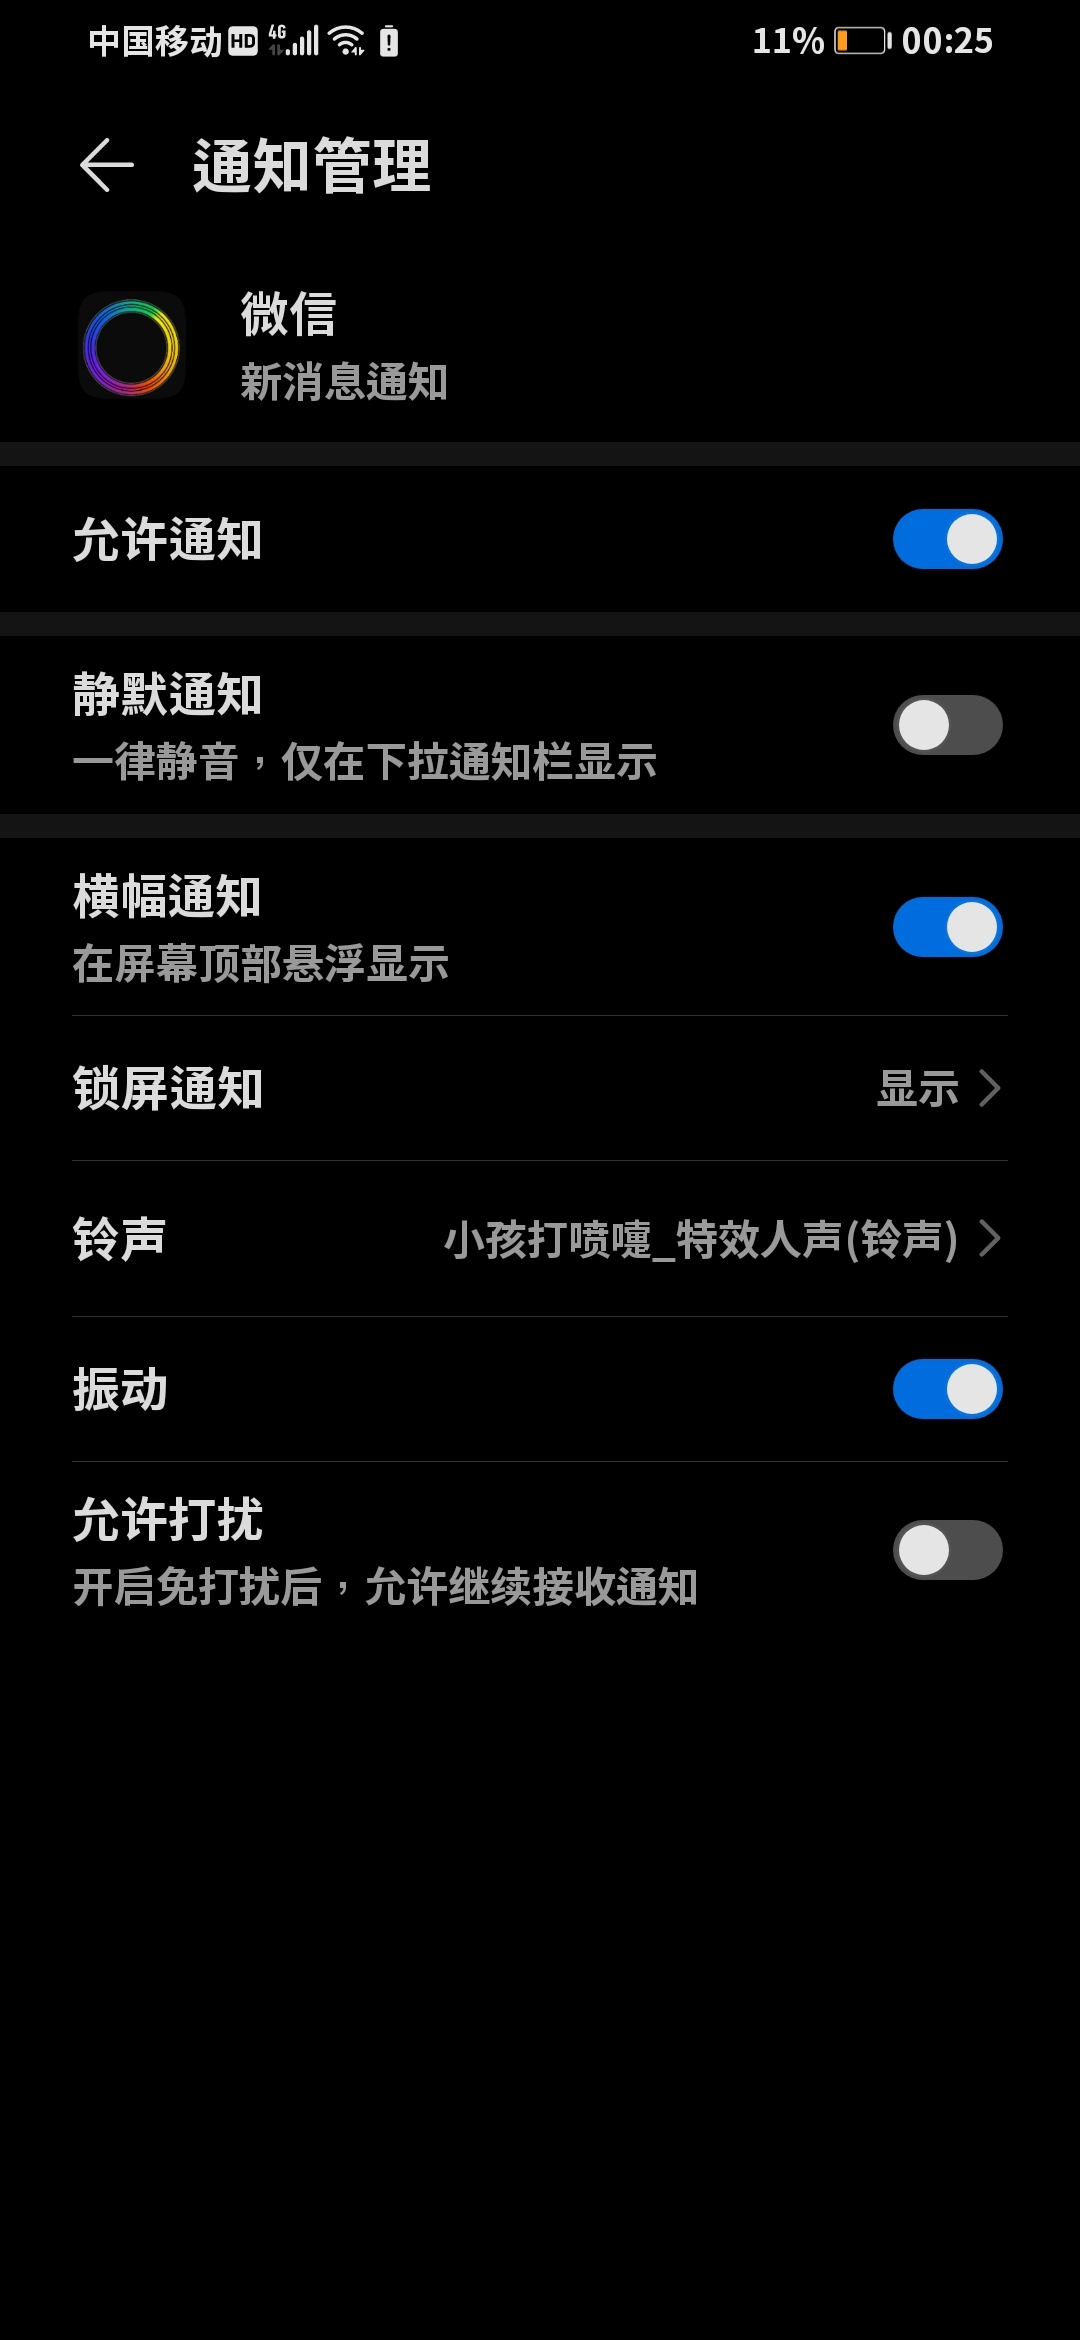 Screenshot_20200523_002507_com.huawei.systemmanager.jpg